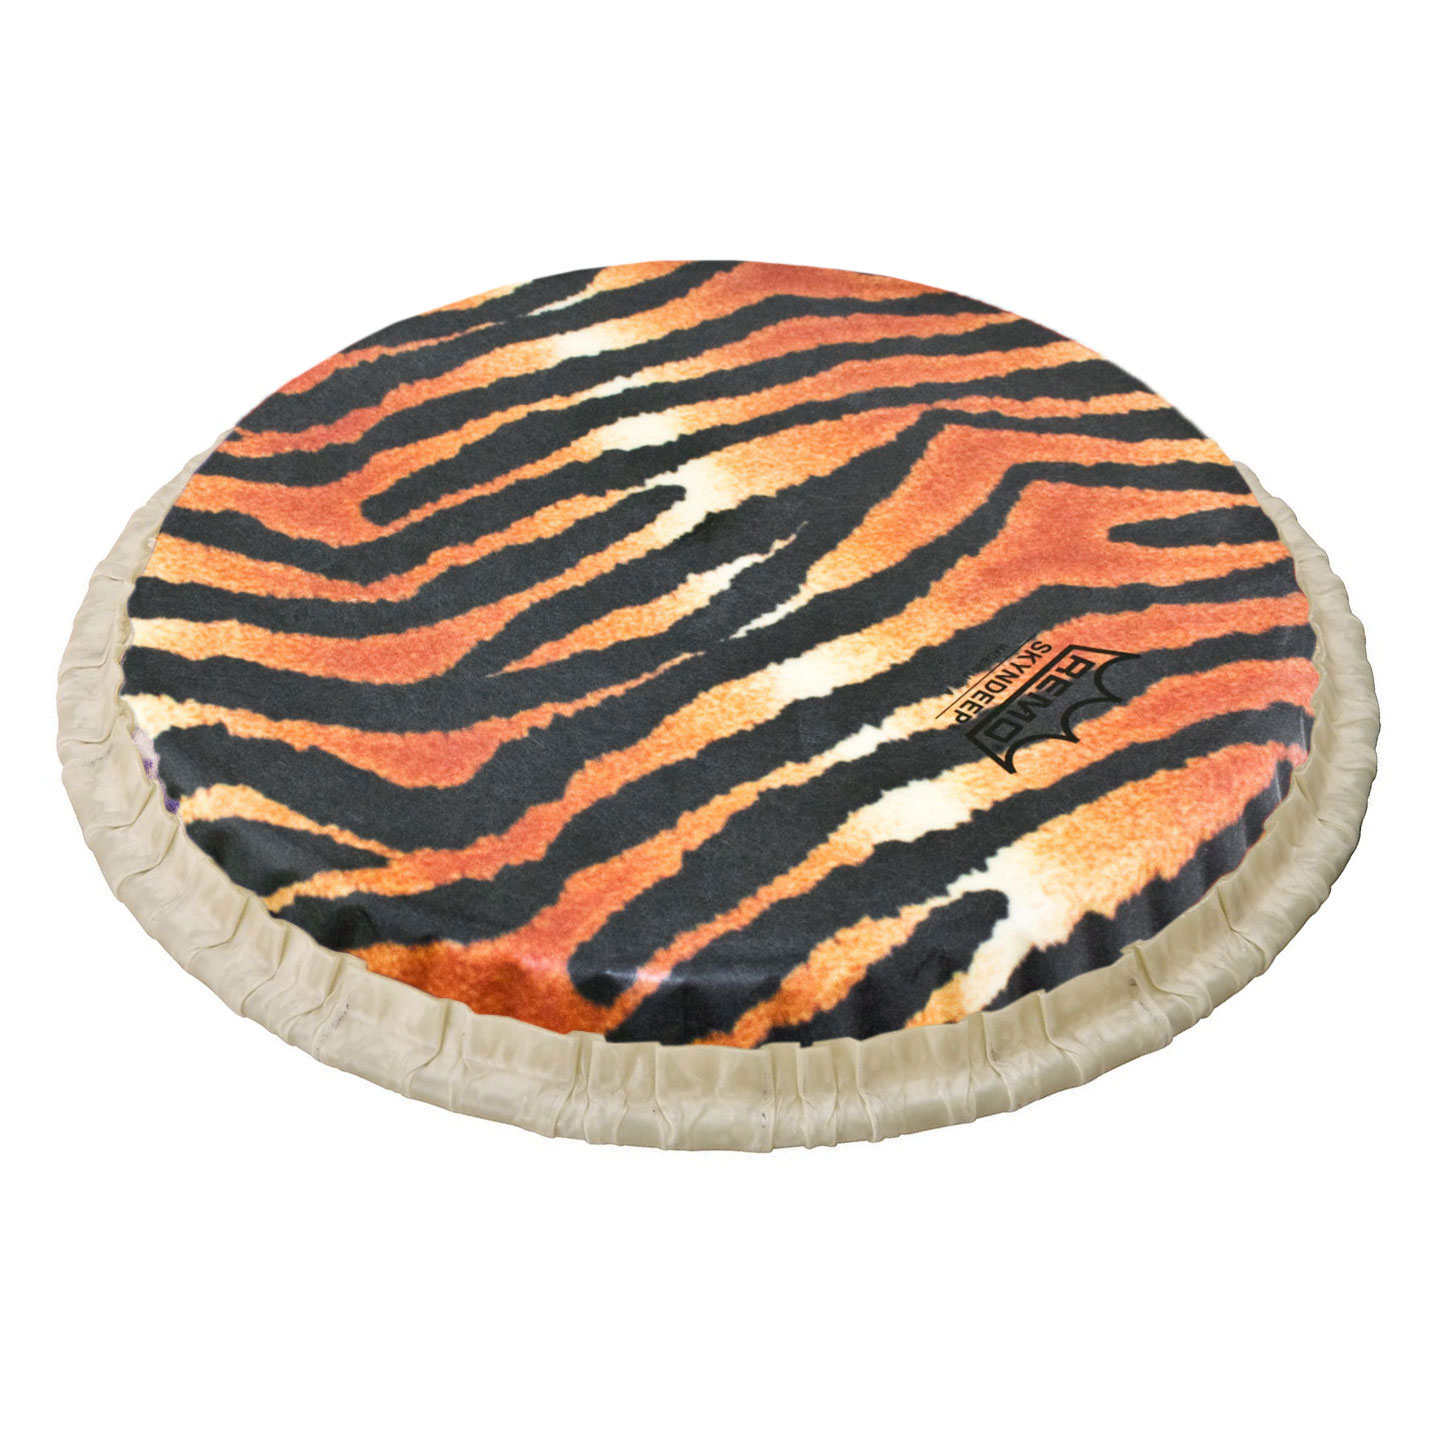 "Remo 11.75"" Tucked Skyndeep Conga Drum Head with Tiger Stripe Graphic"